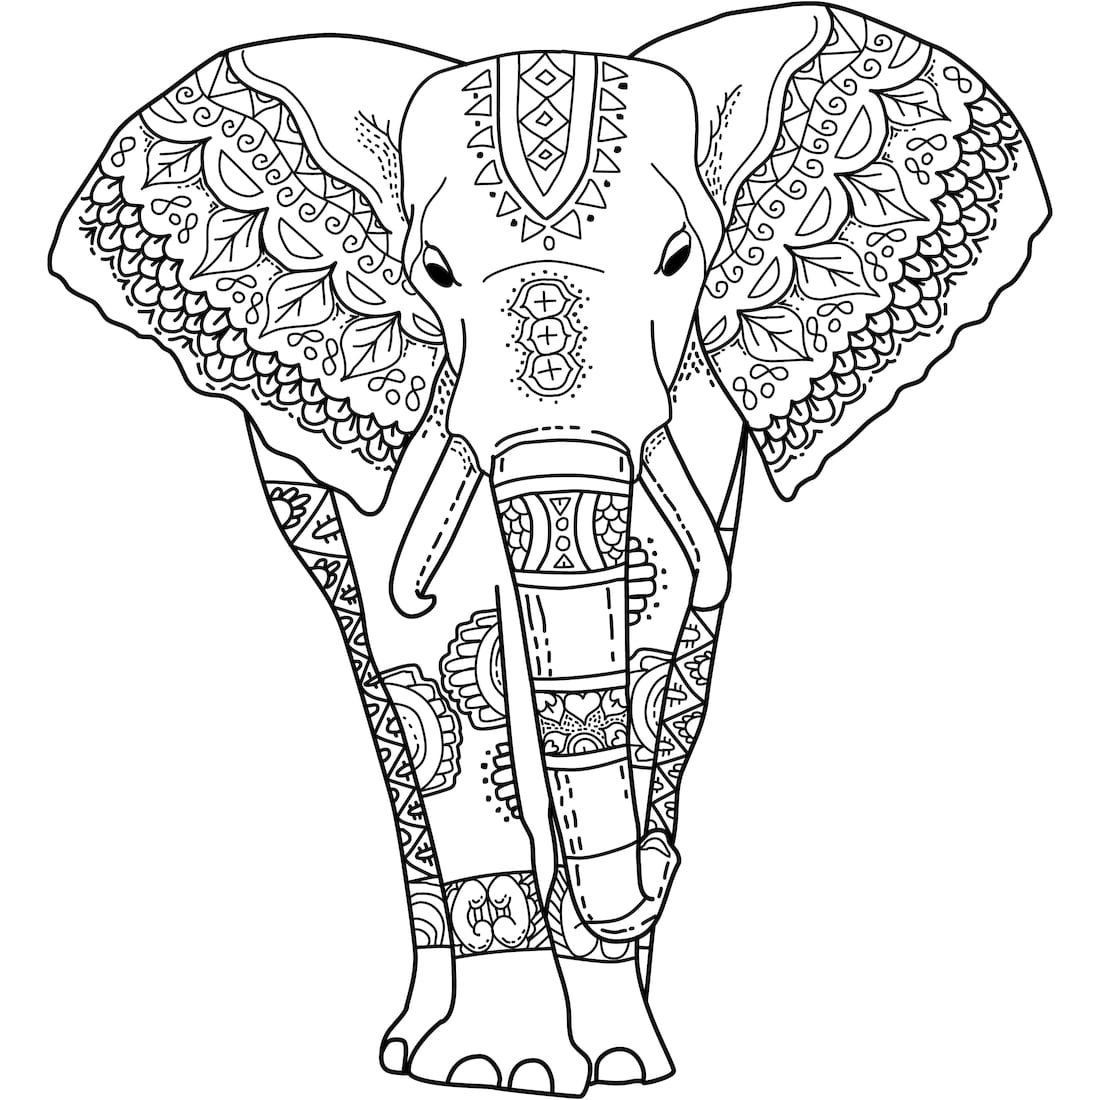 coloring sheets elephant elephant coloring pages for adults best coloring pages sheets elephant coloring